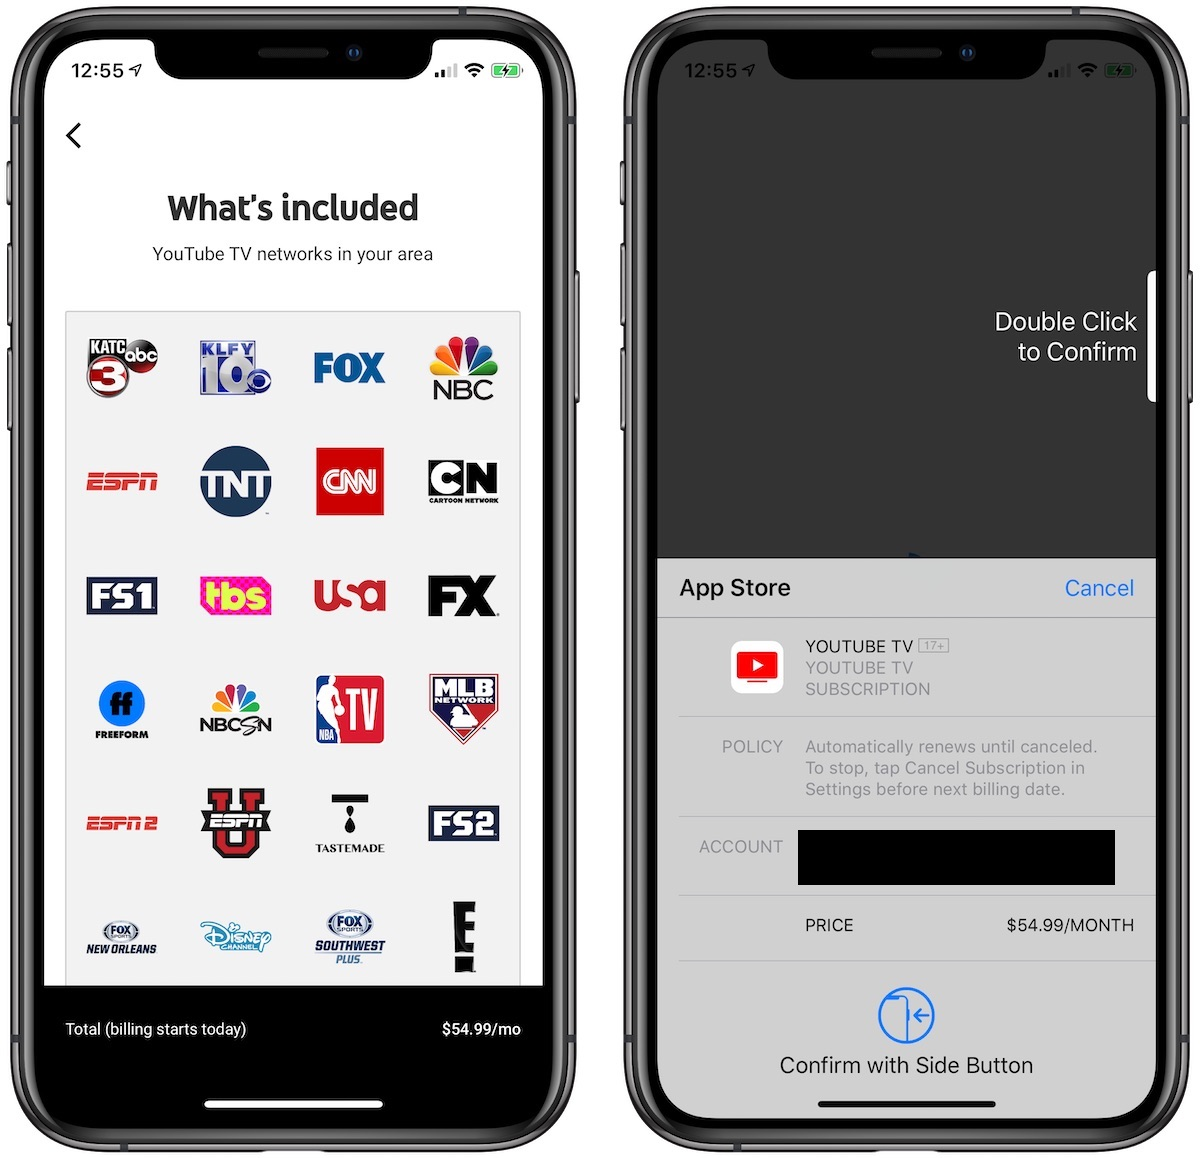 YouTube TV Increases Price to $49 99/Month, $54 99/Month When Billed